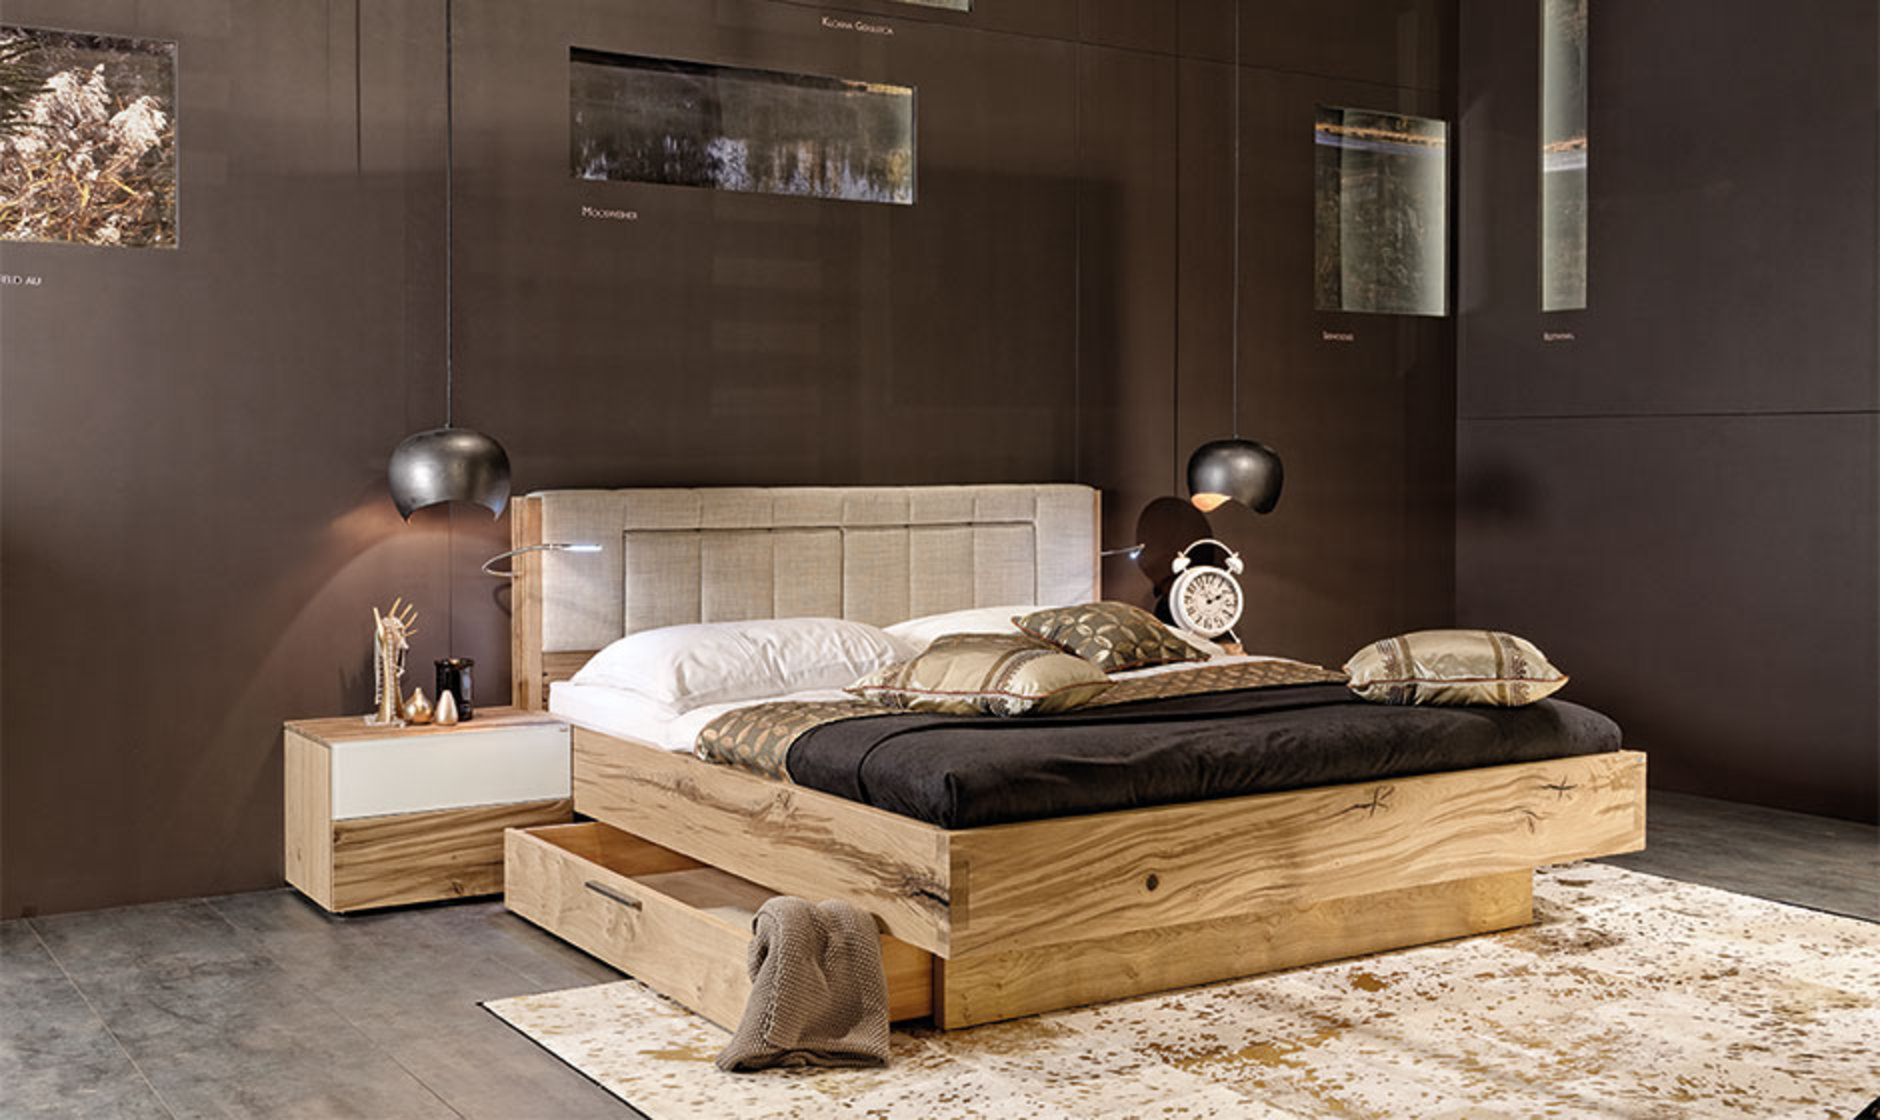 emejing schlafzimmer aus zirbenholz images ridgewayng. Black Bedroom Furniture Sets. Home Design Ideas